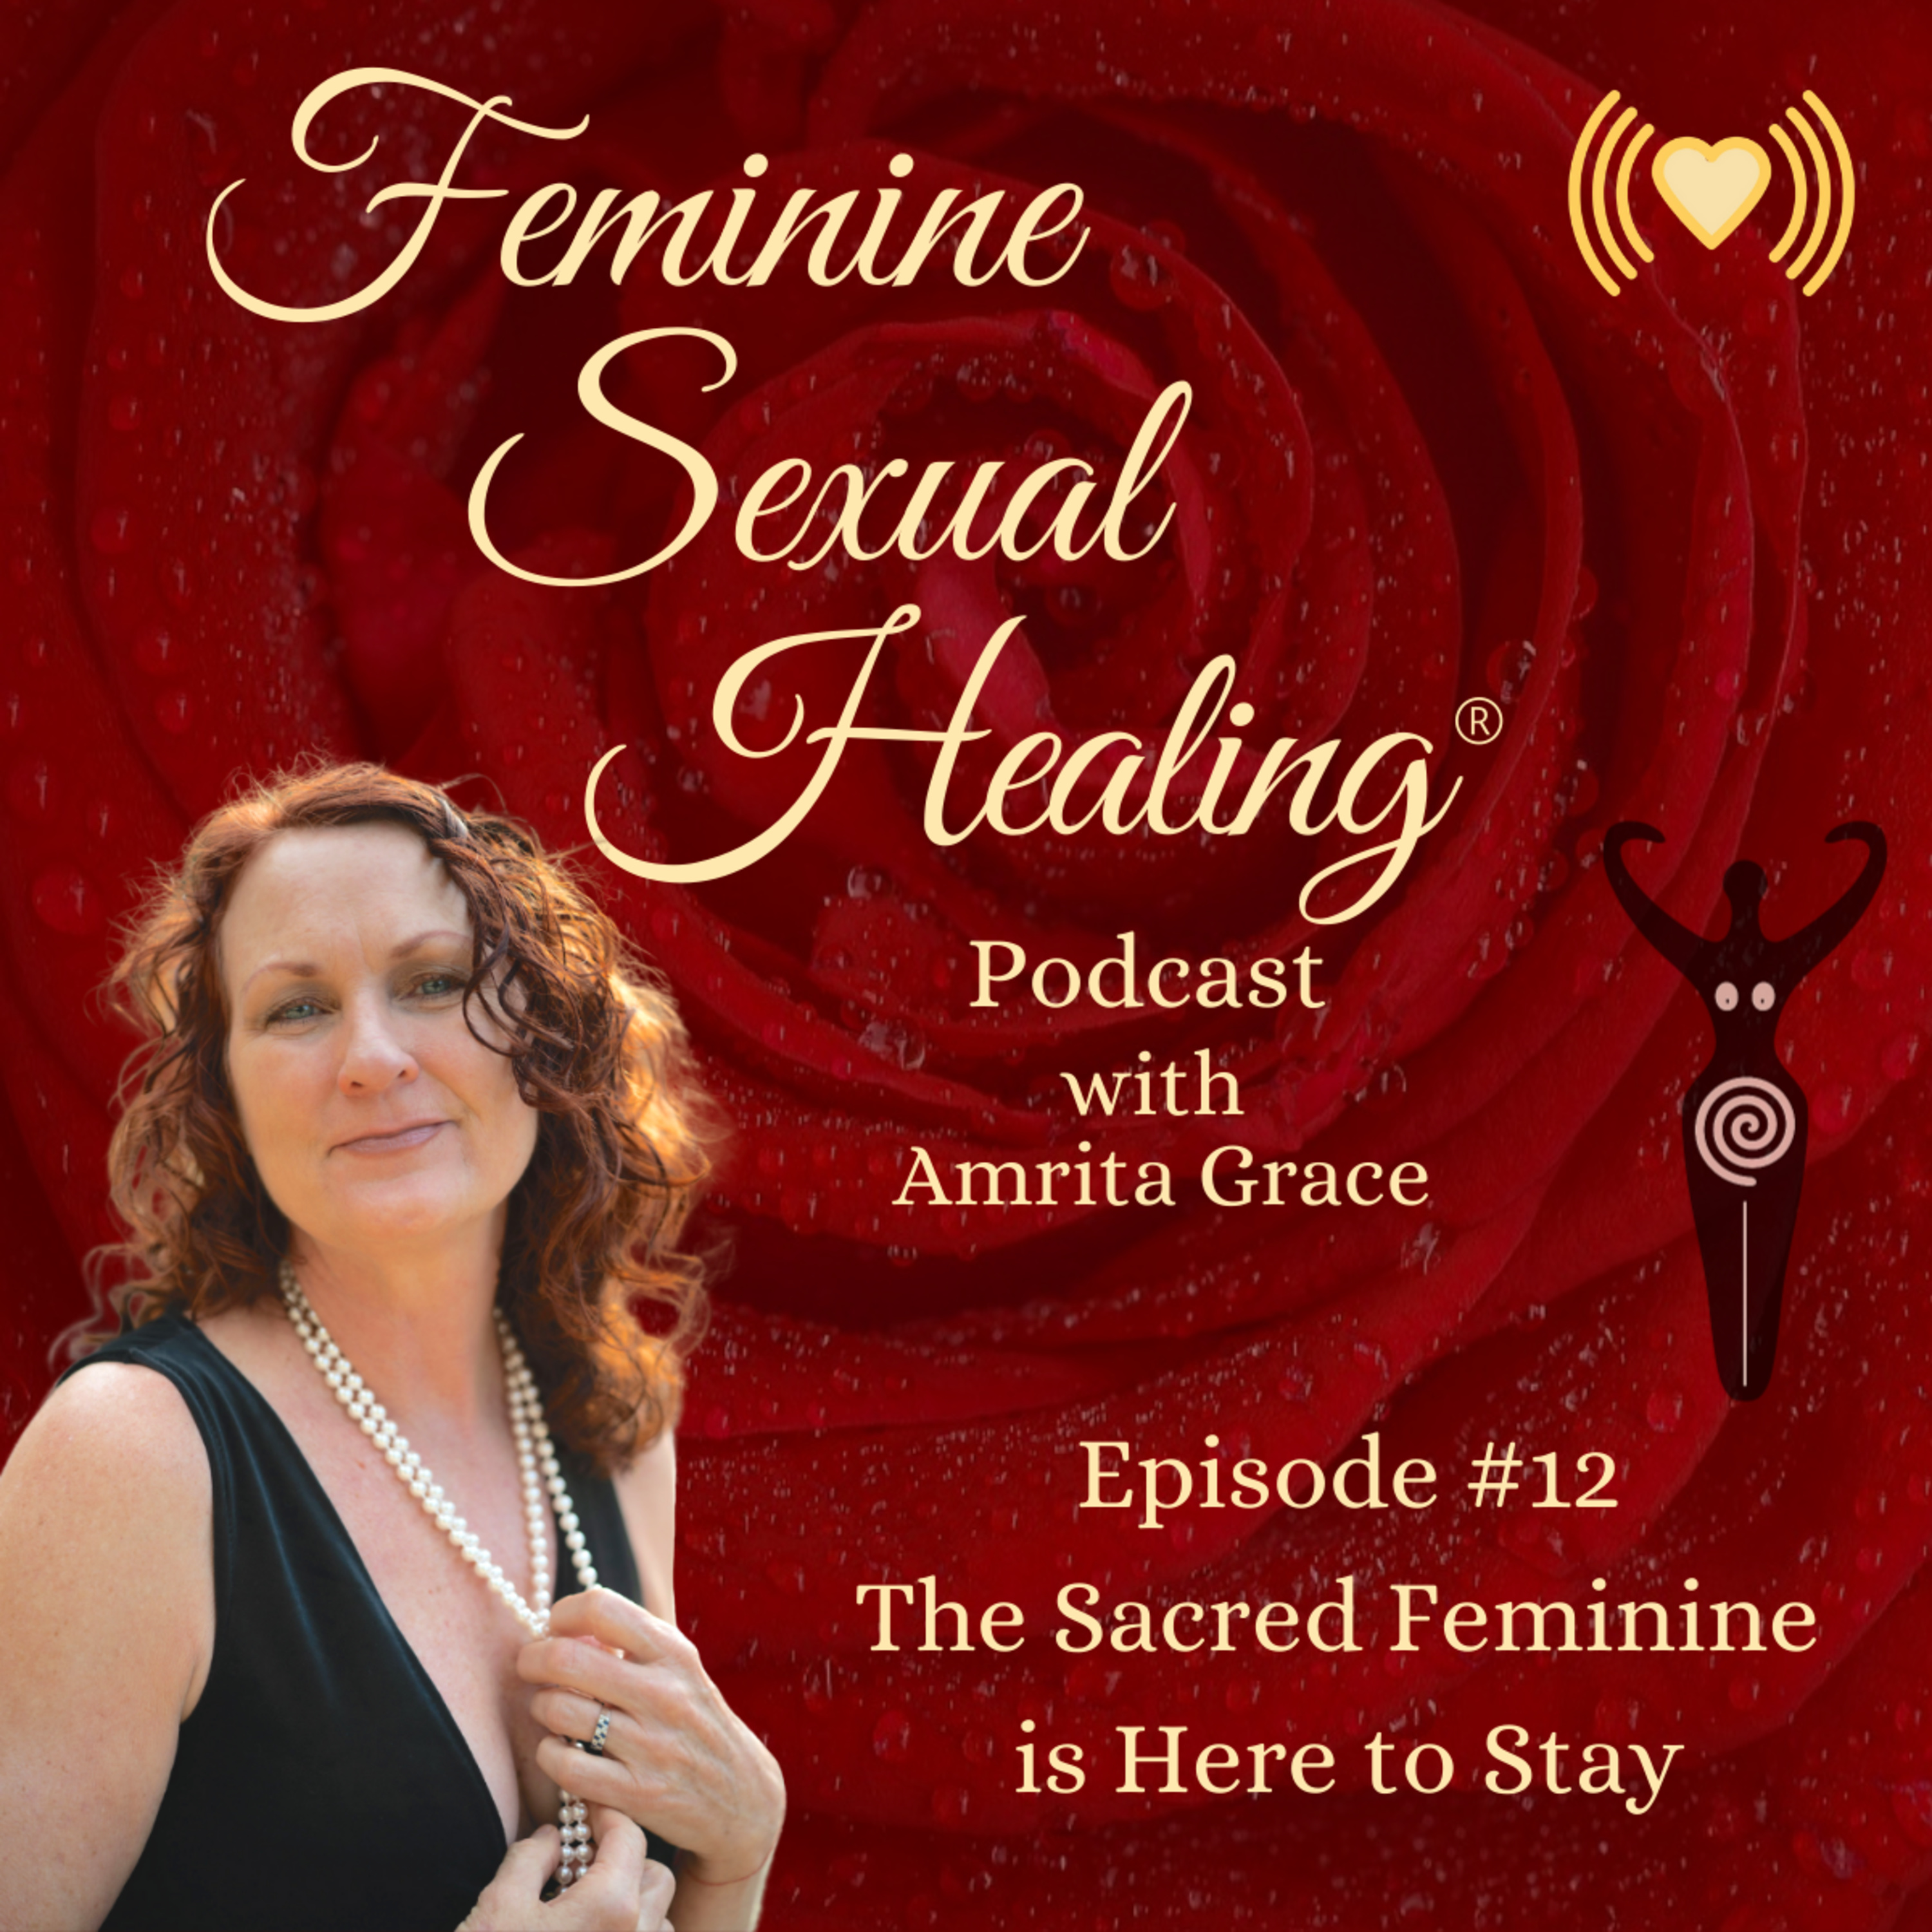 Episode #12 The Sacred Feminine is Here to Stay